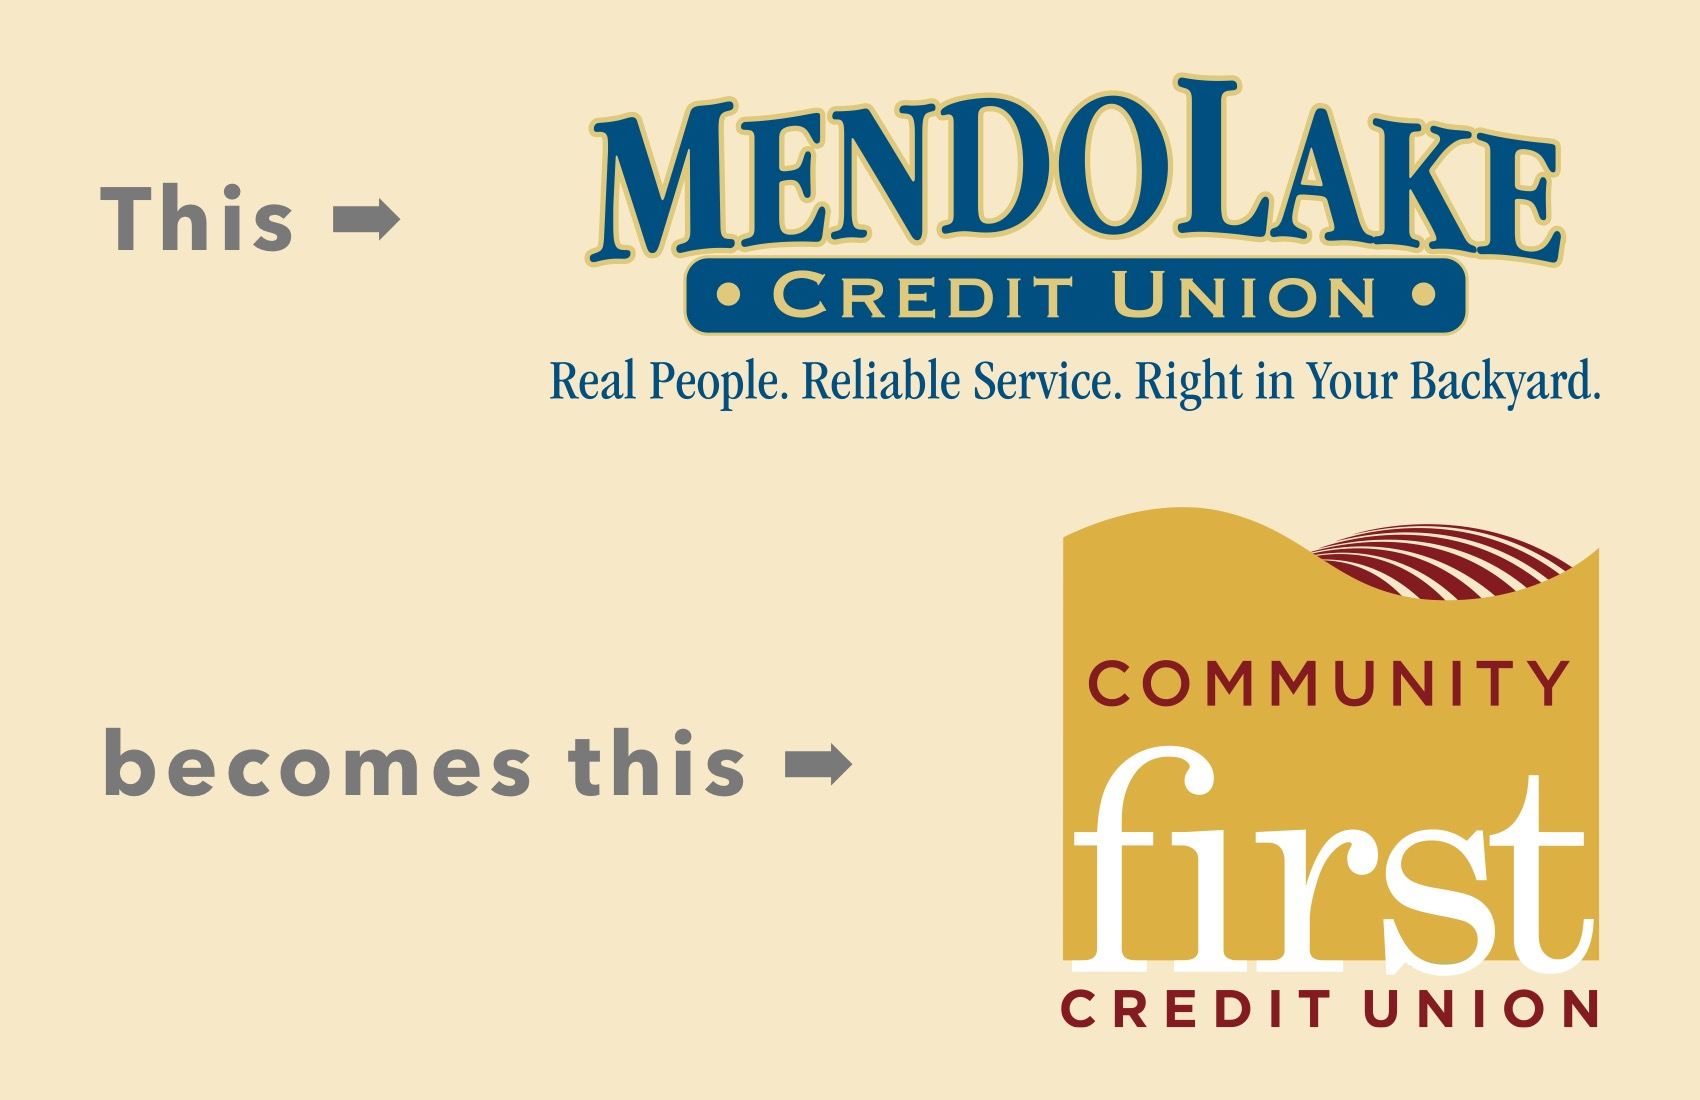 Mendo Lake and Community First Credit Unions Merge